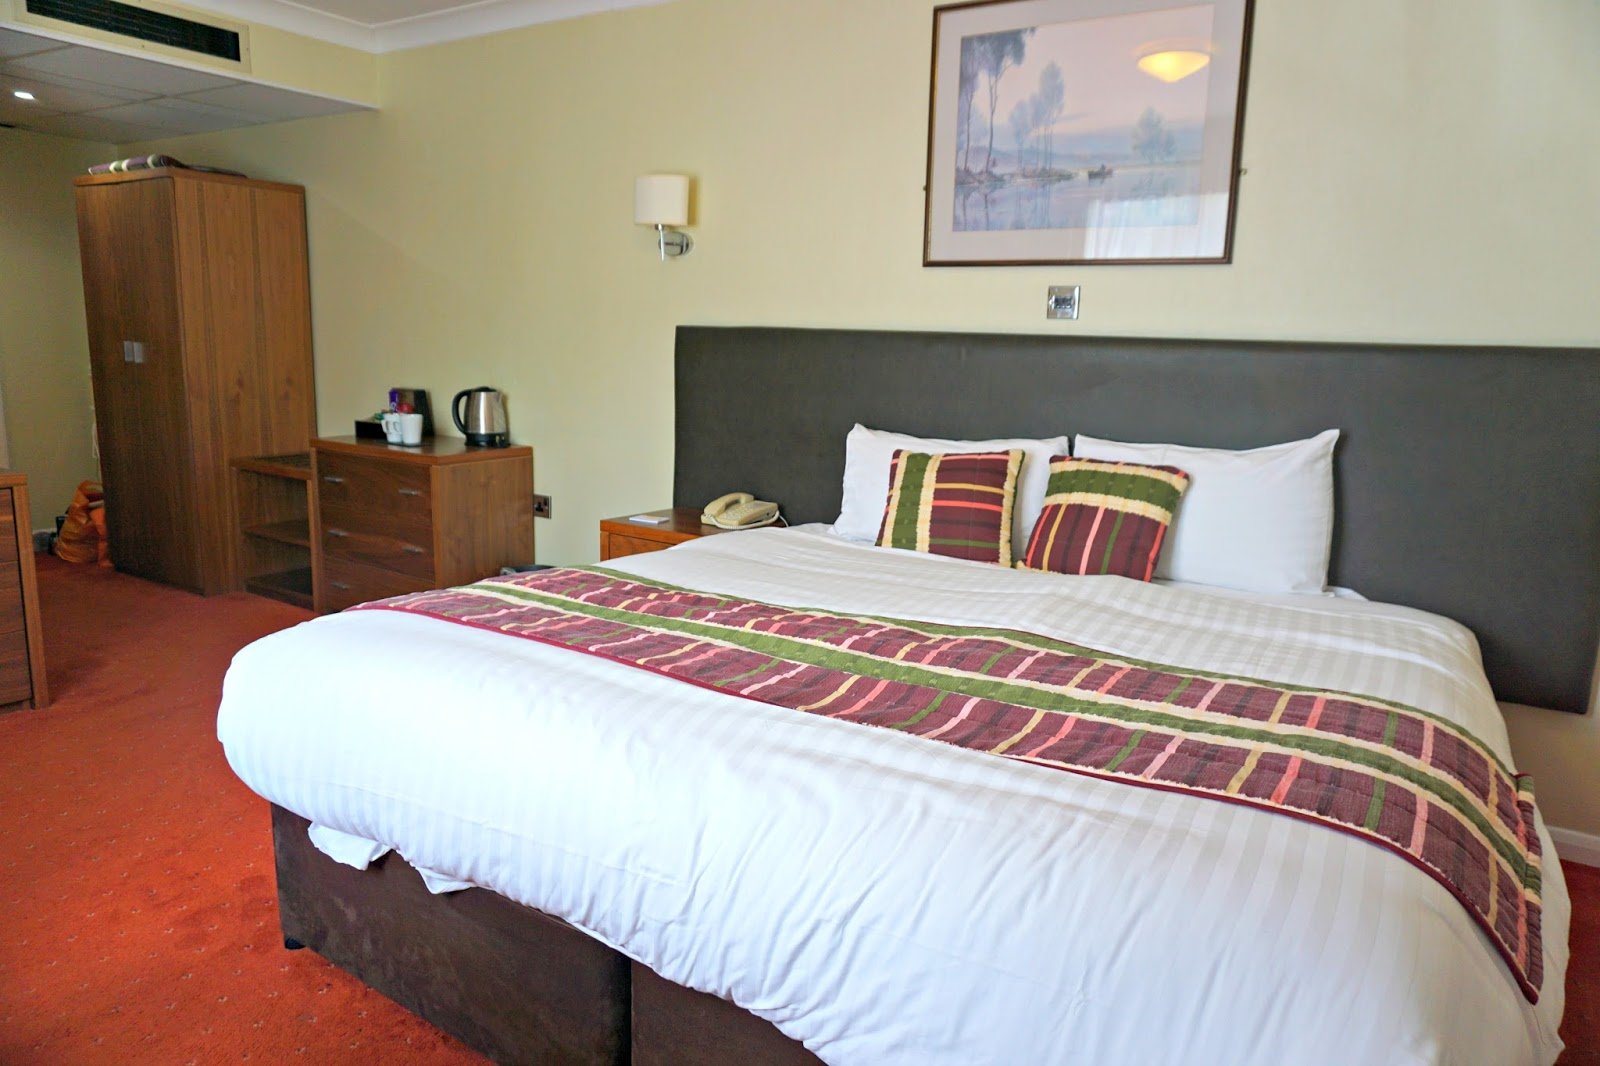 The Milford Hall Hotel Salisbury Wiltshire Stonehenge Amesbury Bedroom Blog Review